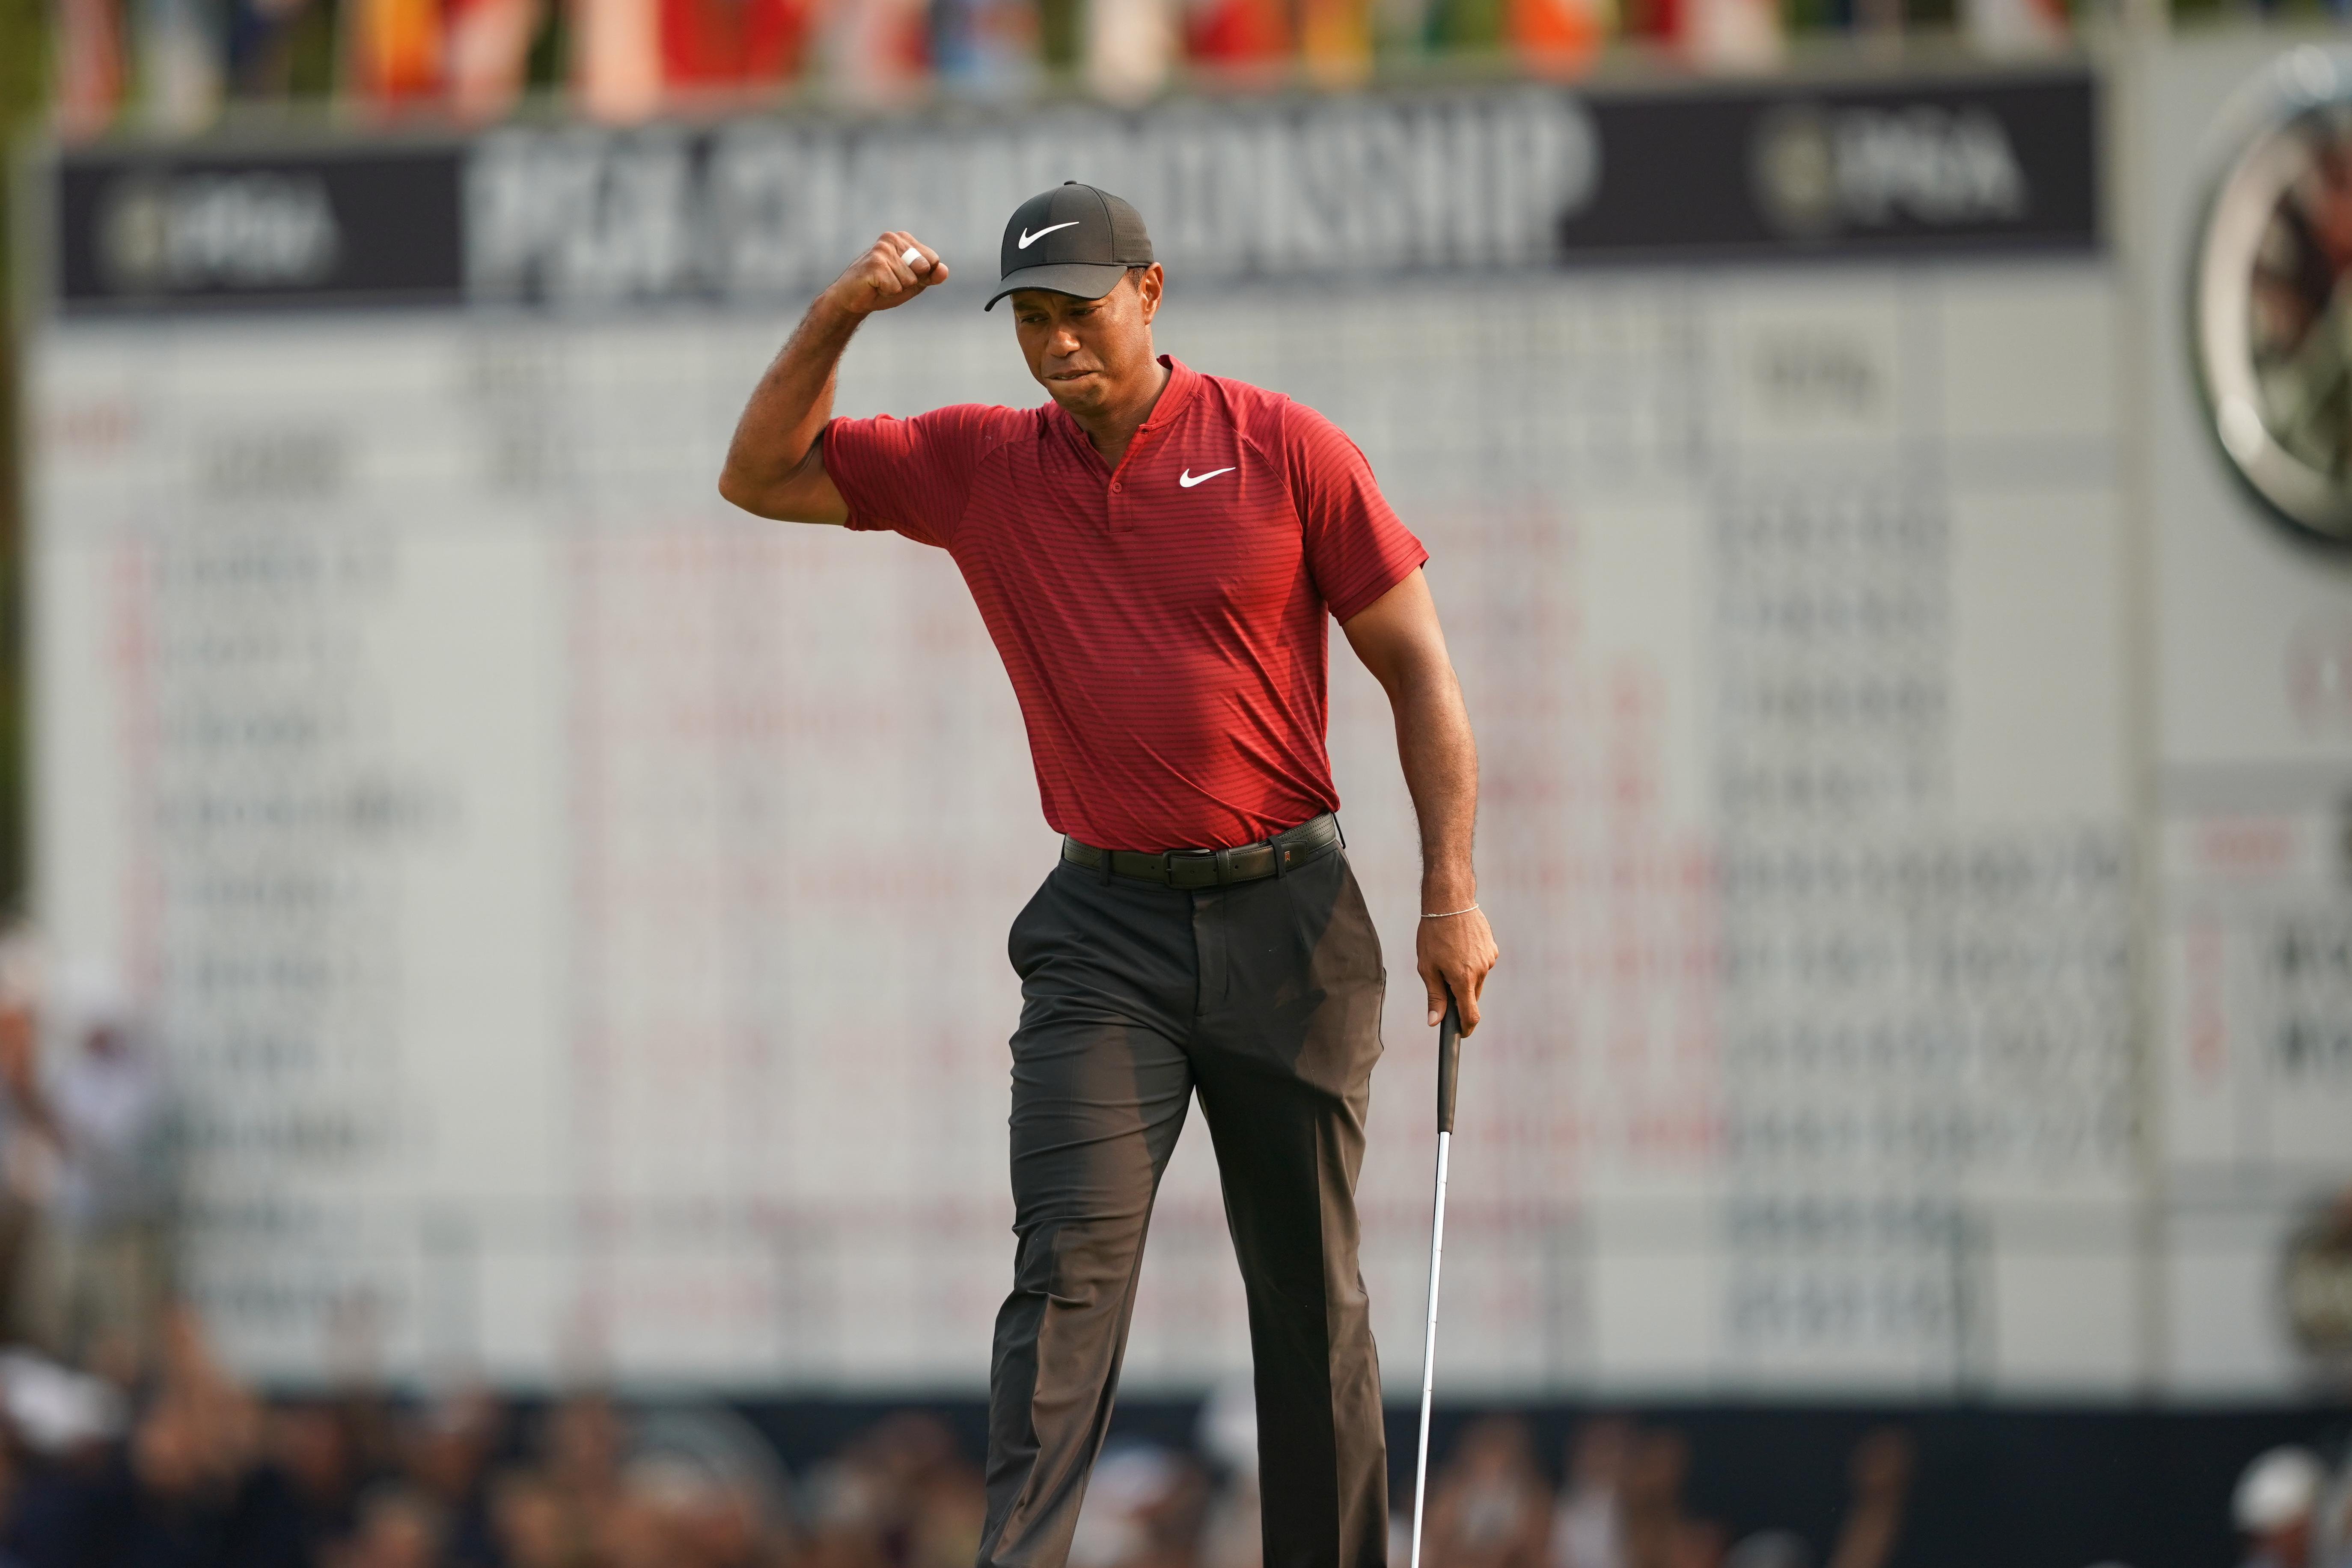 American legend Tiger Woods is closing in on a spot in the Ryder Cup against Europe next month